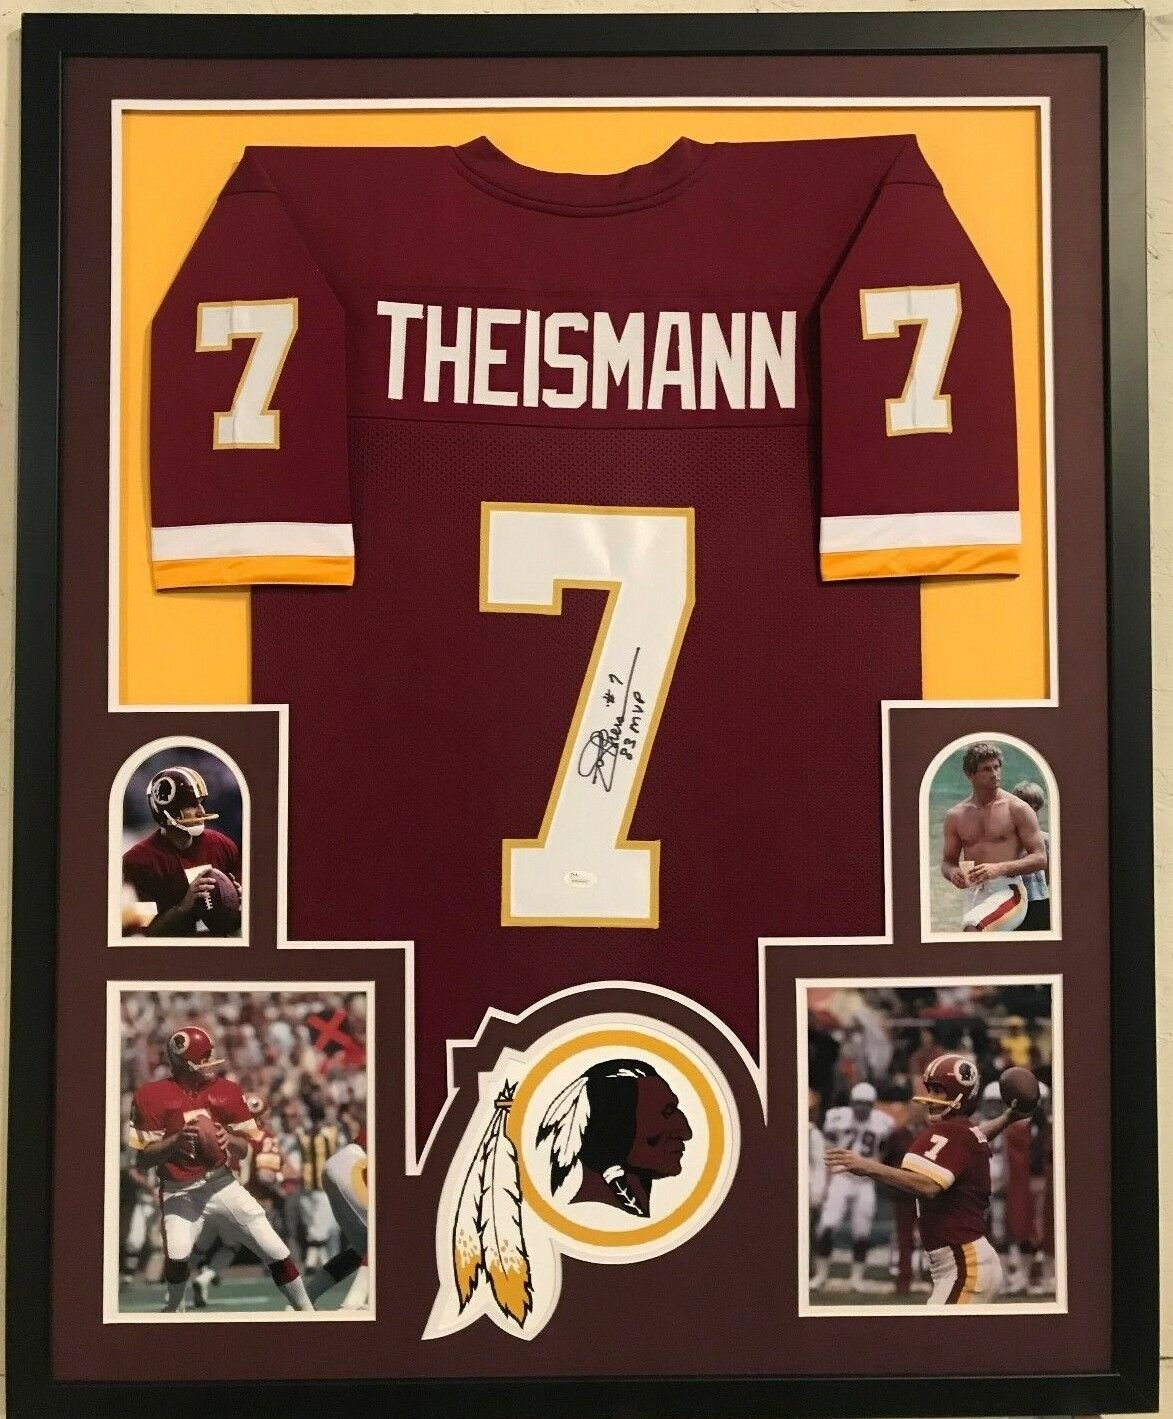 Joe Theismann Autographed Signed Framed Washington Redskins Jersey JSA